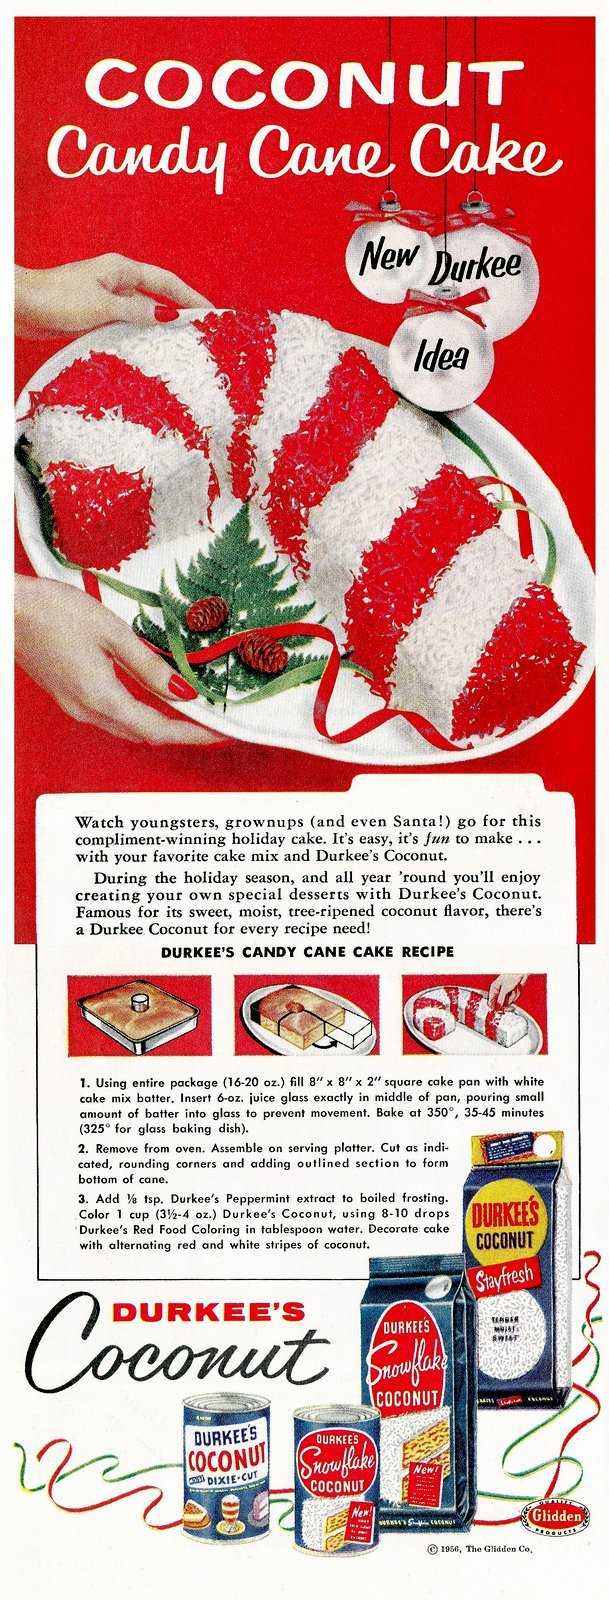 1956 Coconut candy cane cake recipe